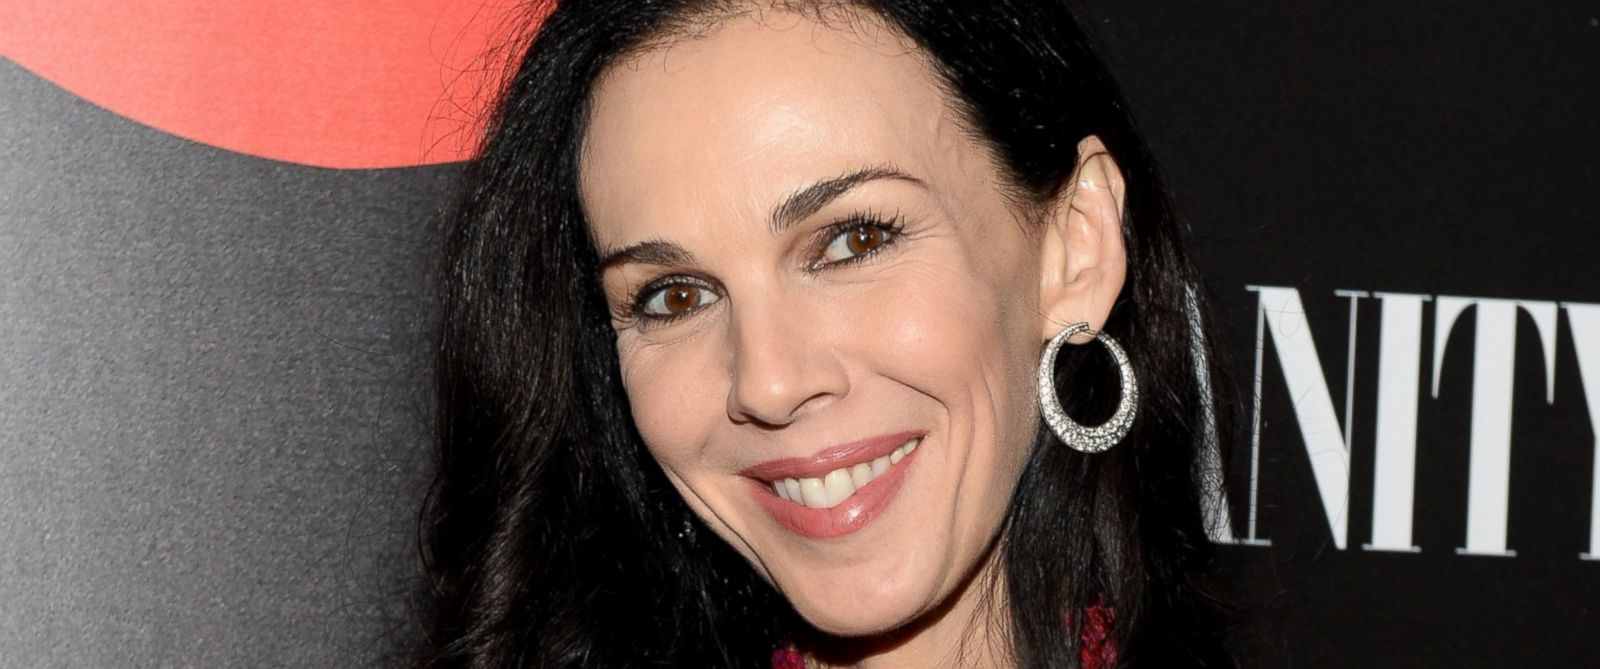 PHOTO: Fashion designer LWren Scott attends the launch celebration of the Banana Republic LWren Scott Collection in this Nov. 19, 2013 file photo.